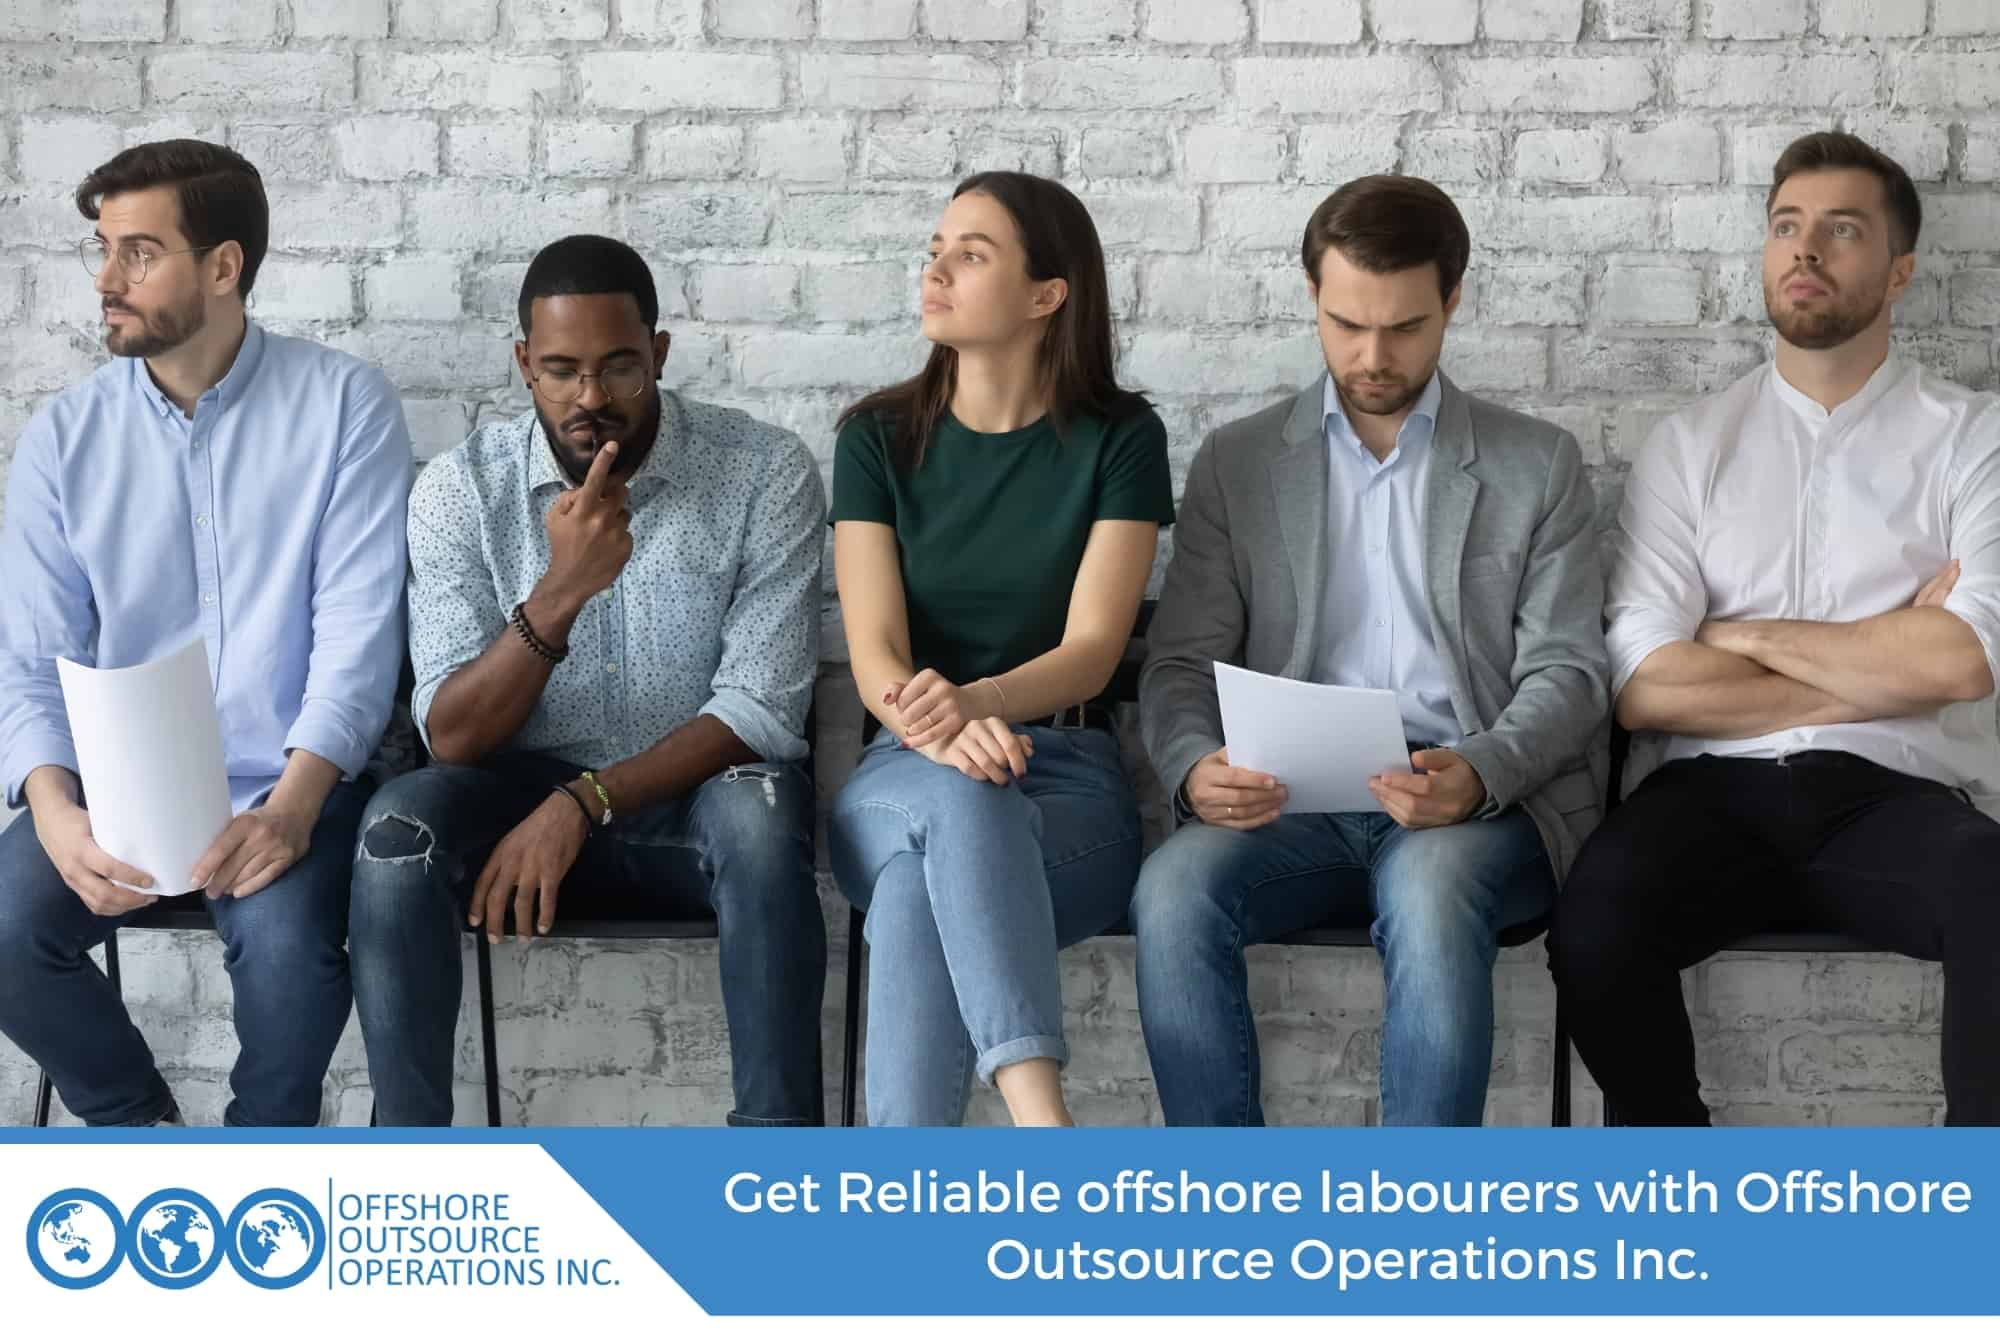 Get Reliable offshore labourers with Offshore Outsource Operations Inc.